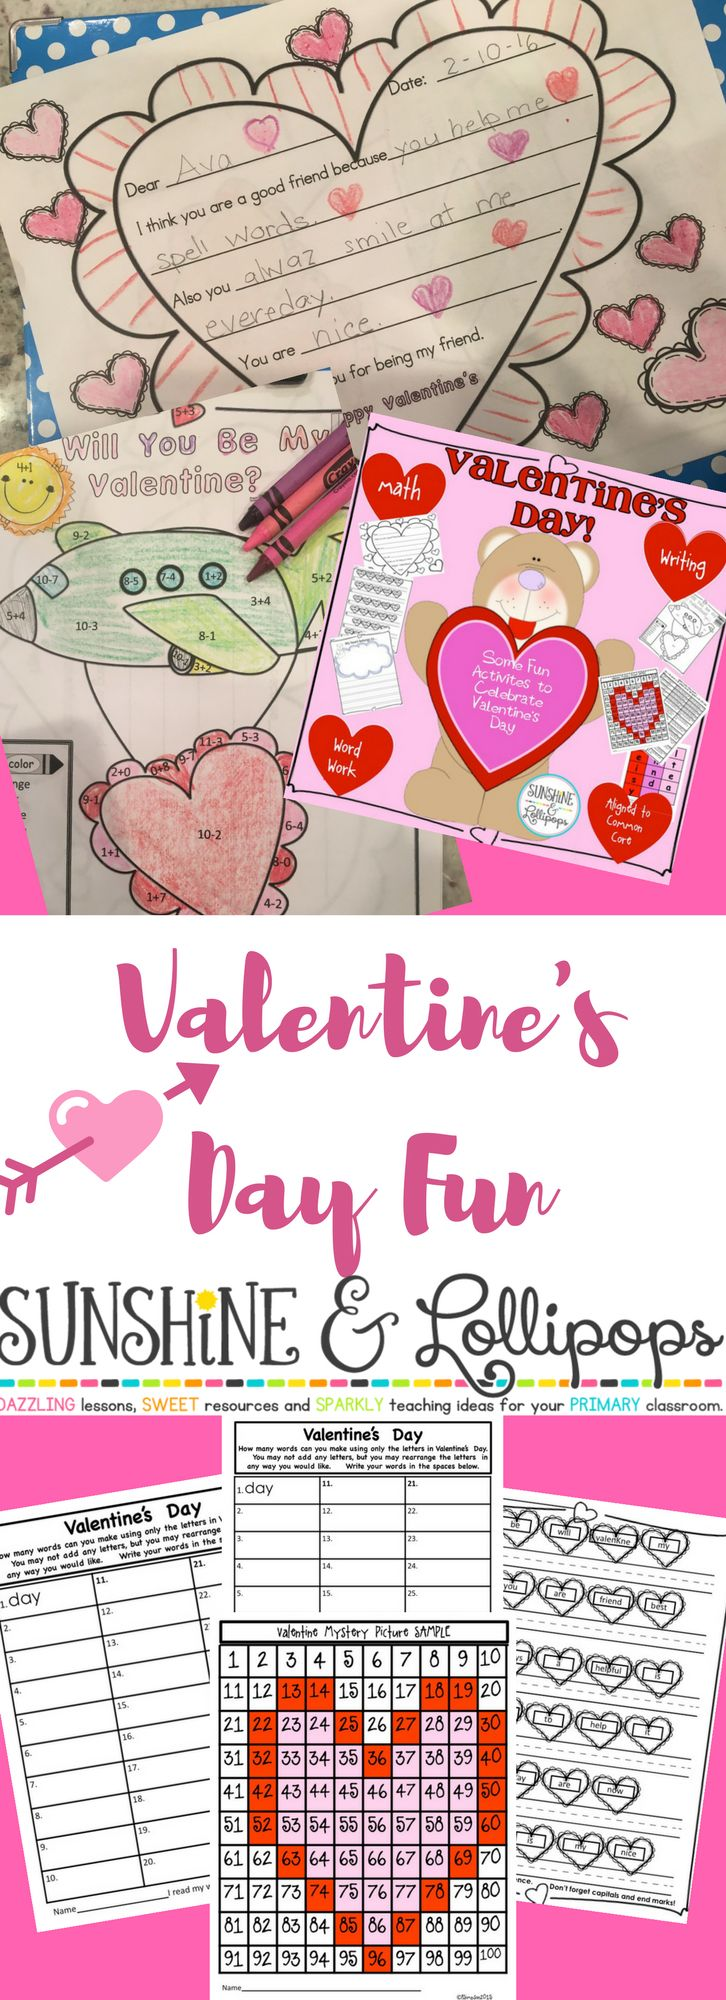 Happy Valentine's Day Fun is a great resource to use for stations, morning work the week of Valentine's Day, homework and in your homeschool. it is aligned with CC and includes word work, math and writing! Dollar DEAL...ENJOY!